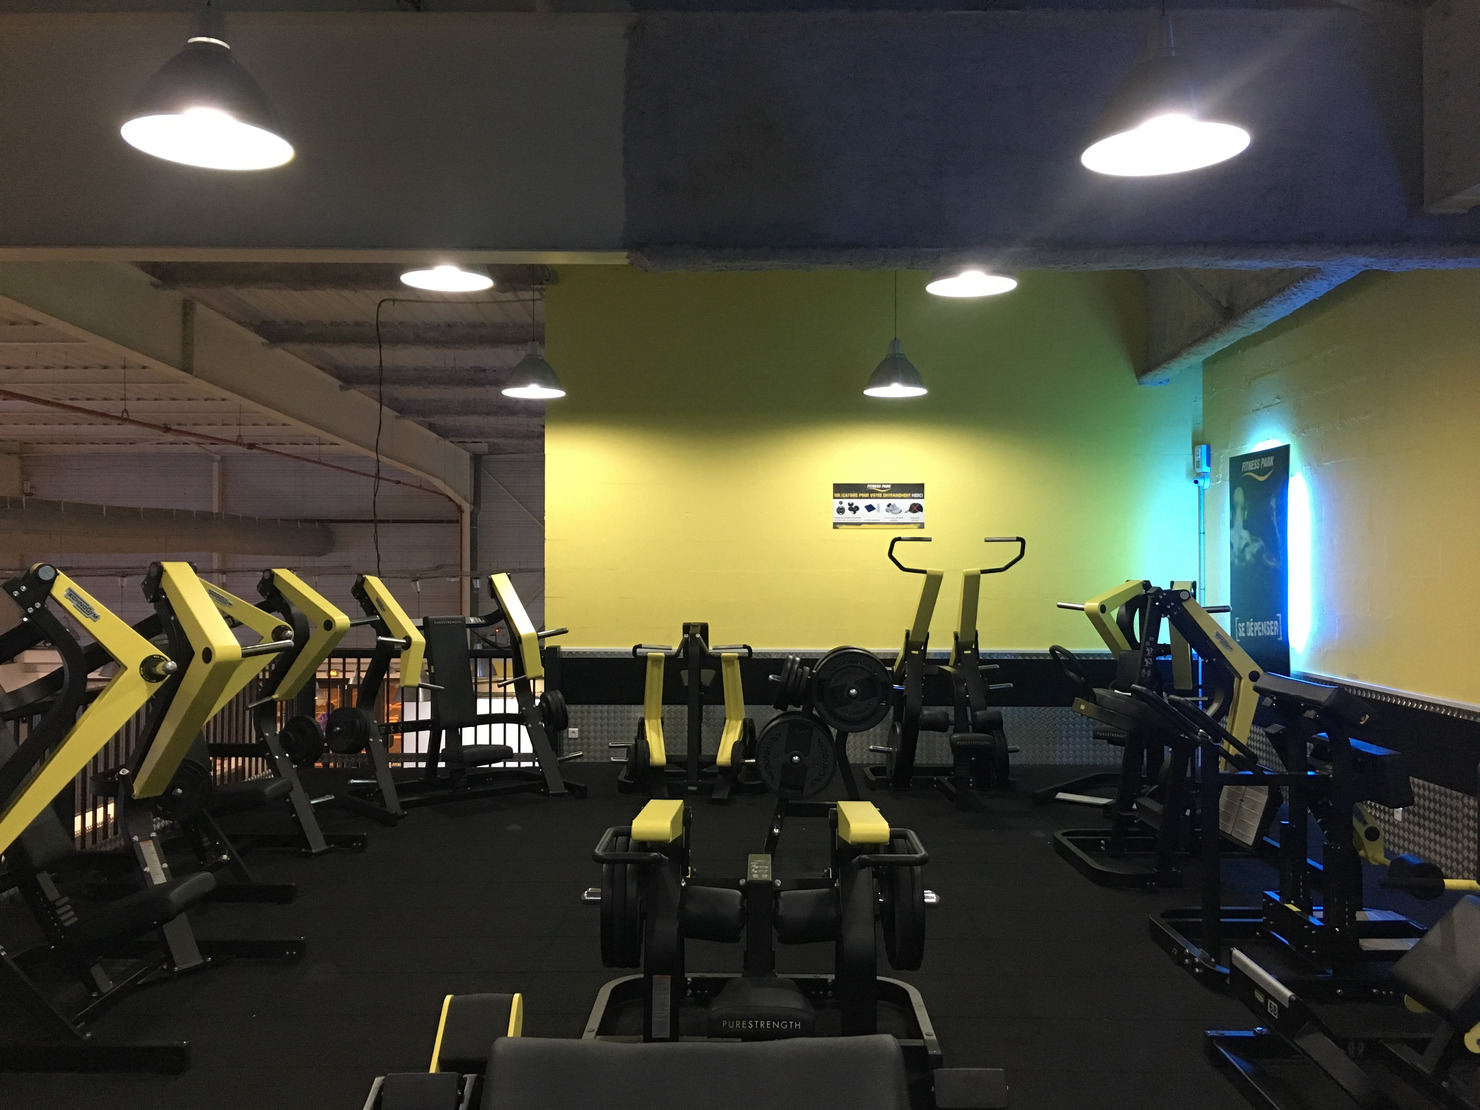 fitness park pontault roissy roissy en brie tarifs avis horaires essai gratuit. Black Bedroom Furniture Sets. Home Design Ideas